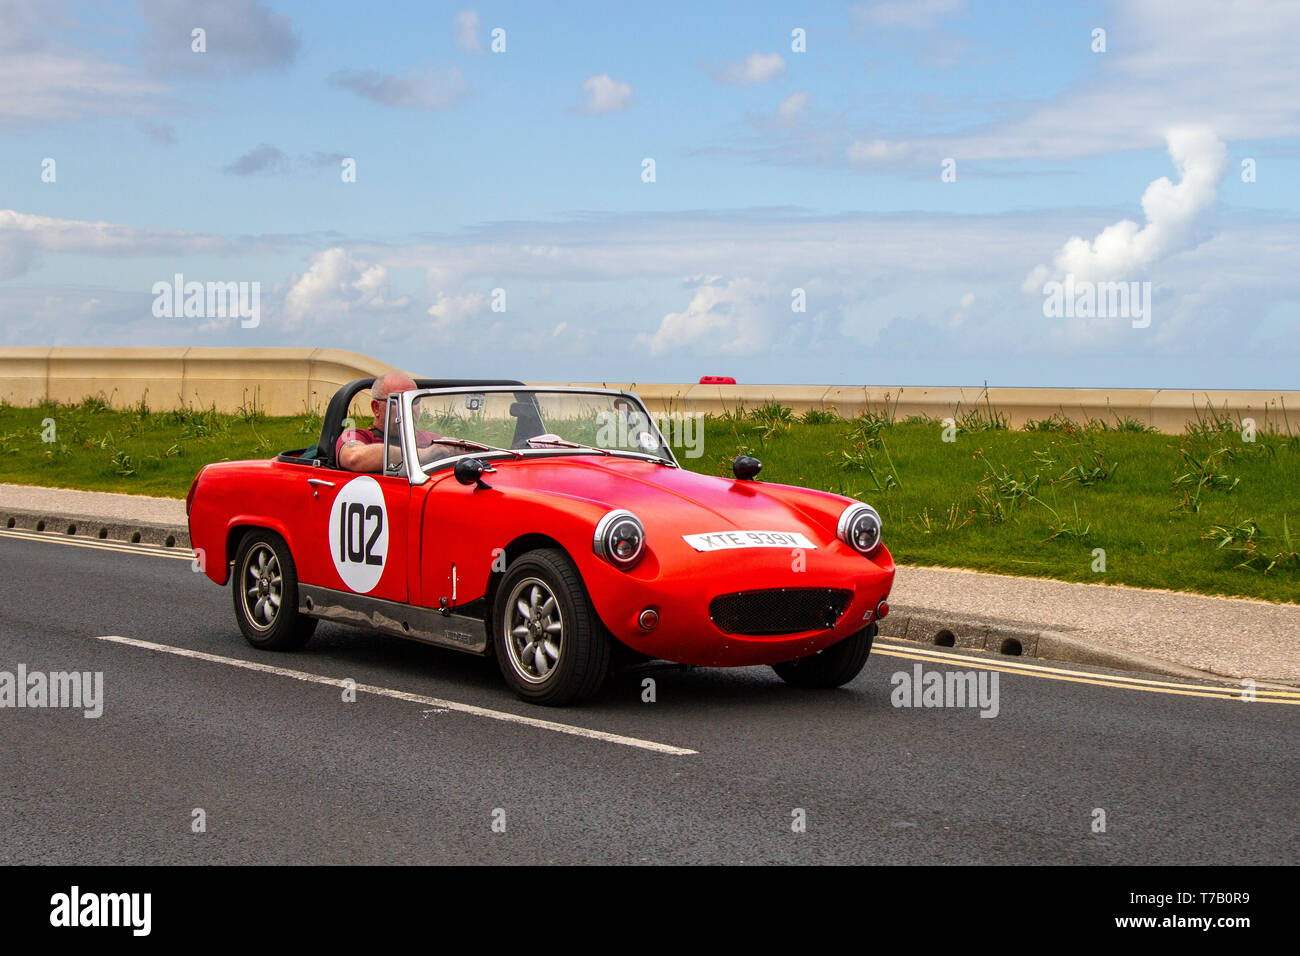 1979 MG Midget 1500 at Cleveleys Spring Car Show at Jubilee Gardens in 2019. A new location for a Classic Vehicle show from Blackpool Vehicle Preservation Group (BVPG). - Stock Image